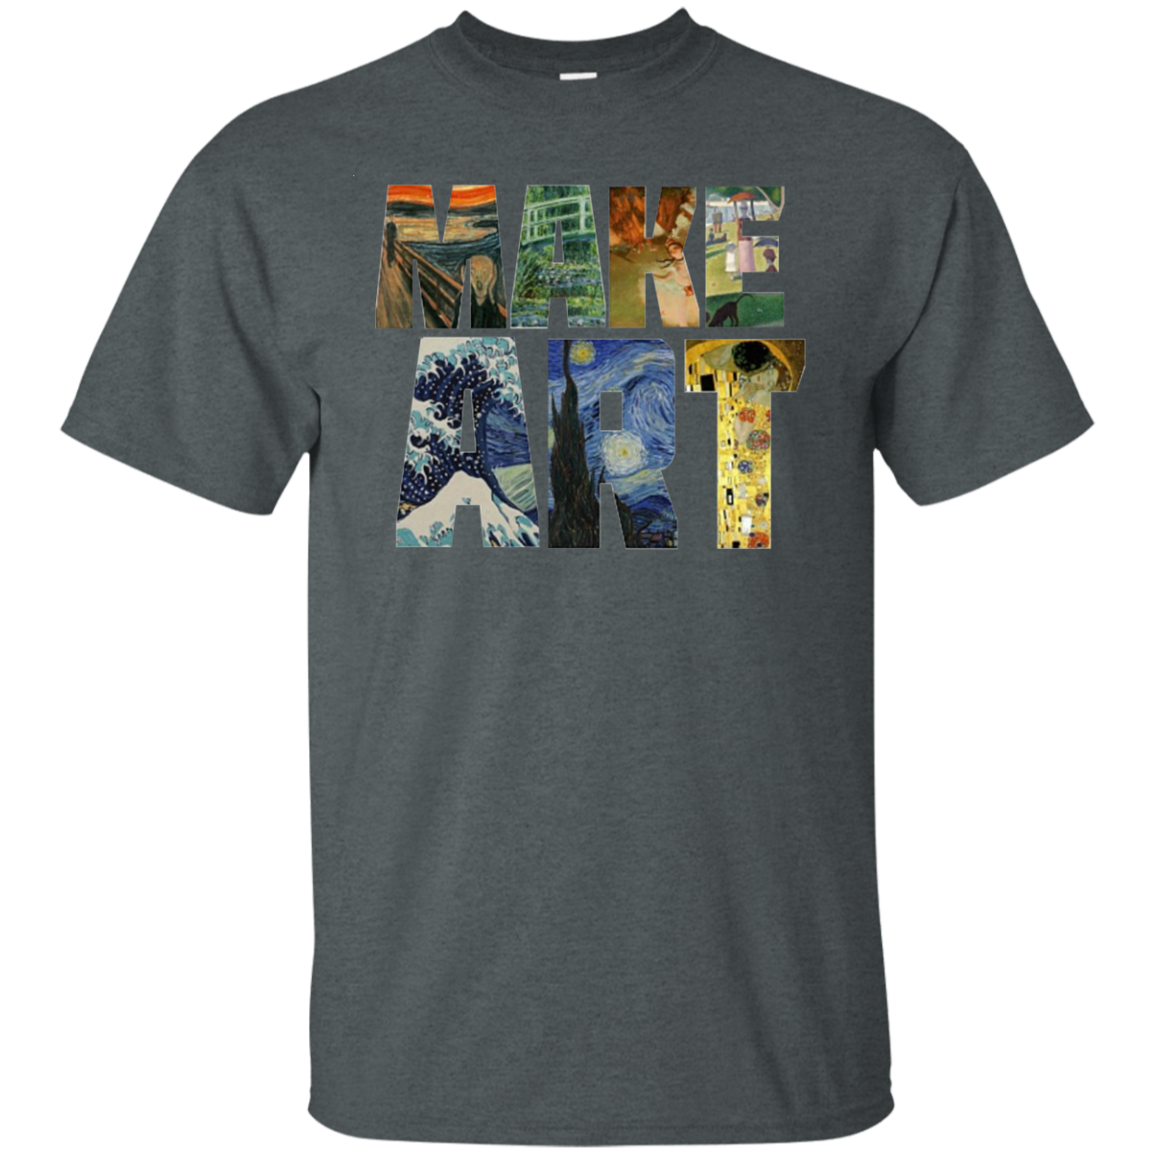 Make Art Best Selling TShirt (With images) Shirts, How